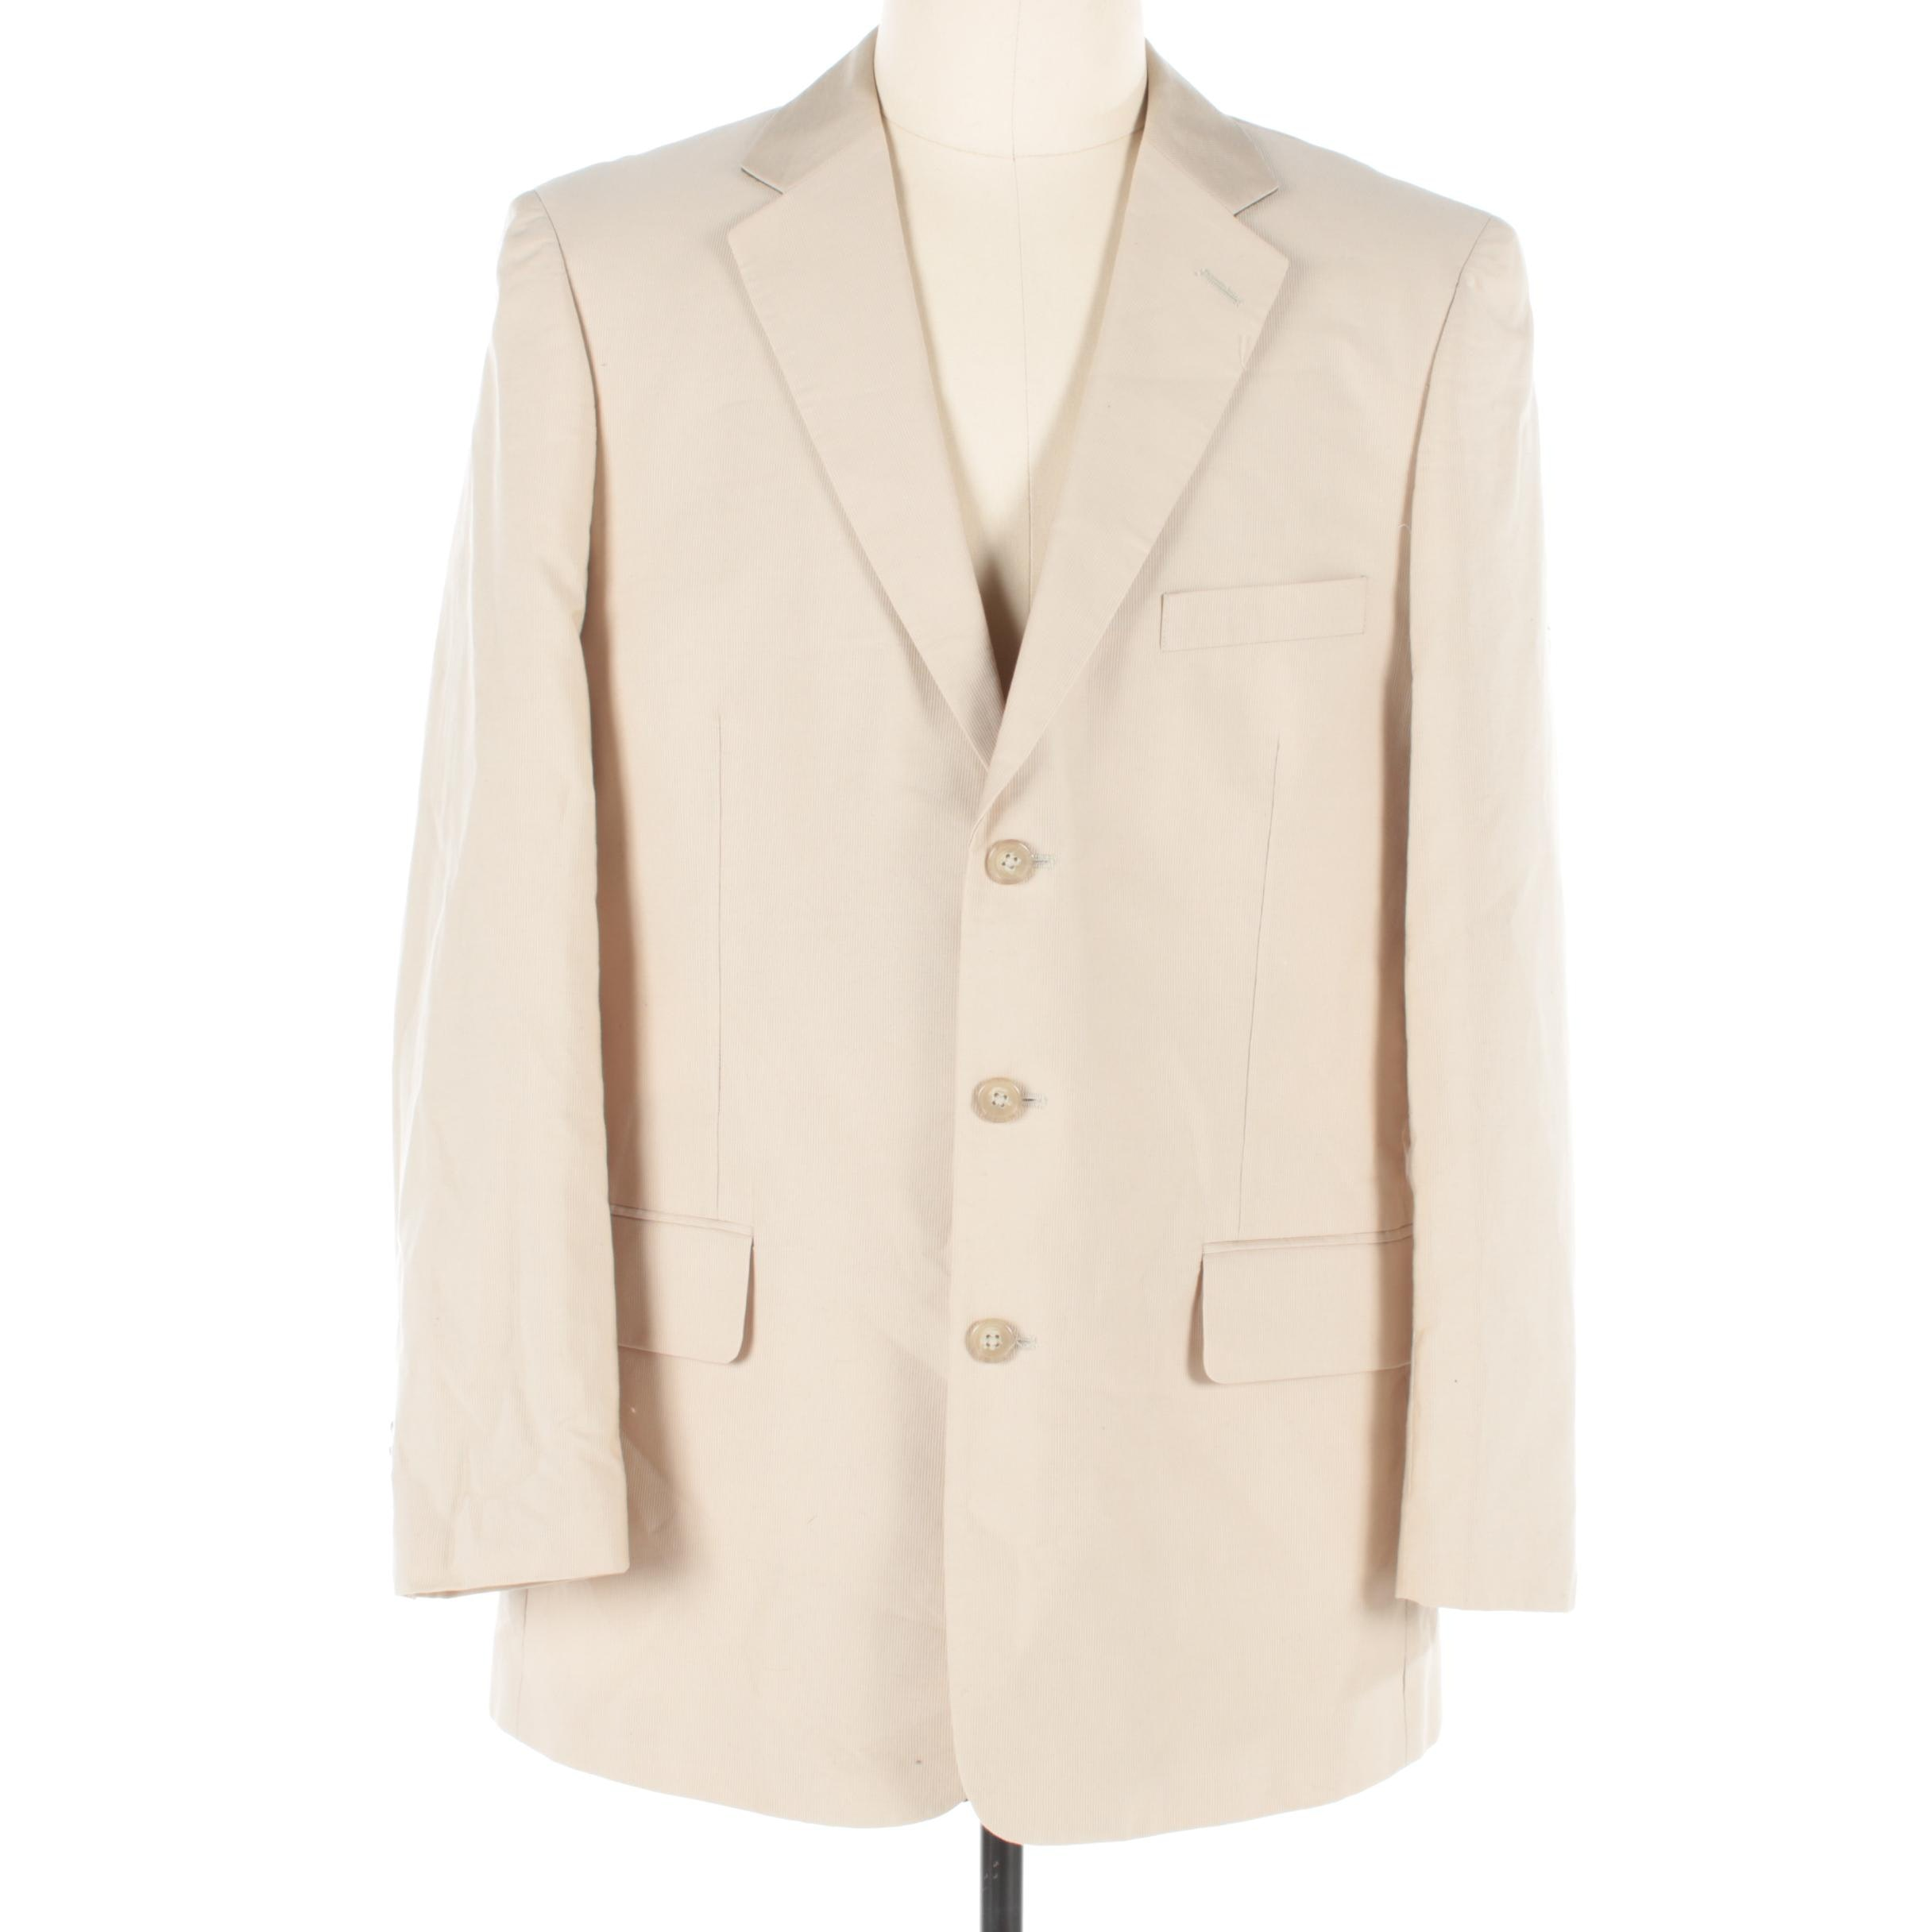 Men's Parisian Signature Linen Suit Jacket